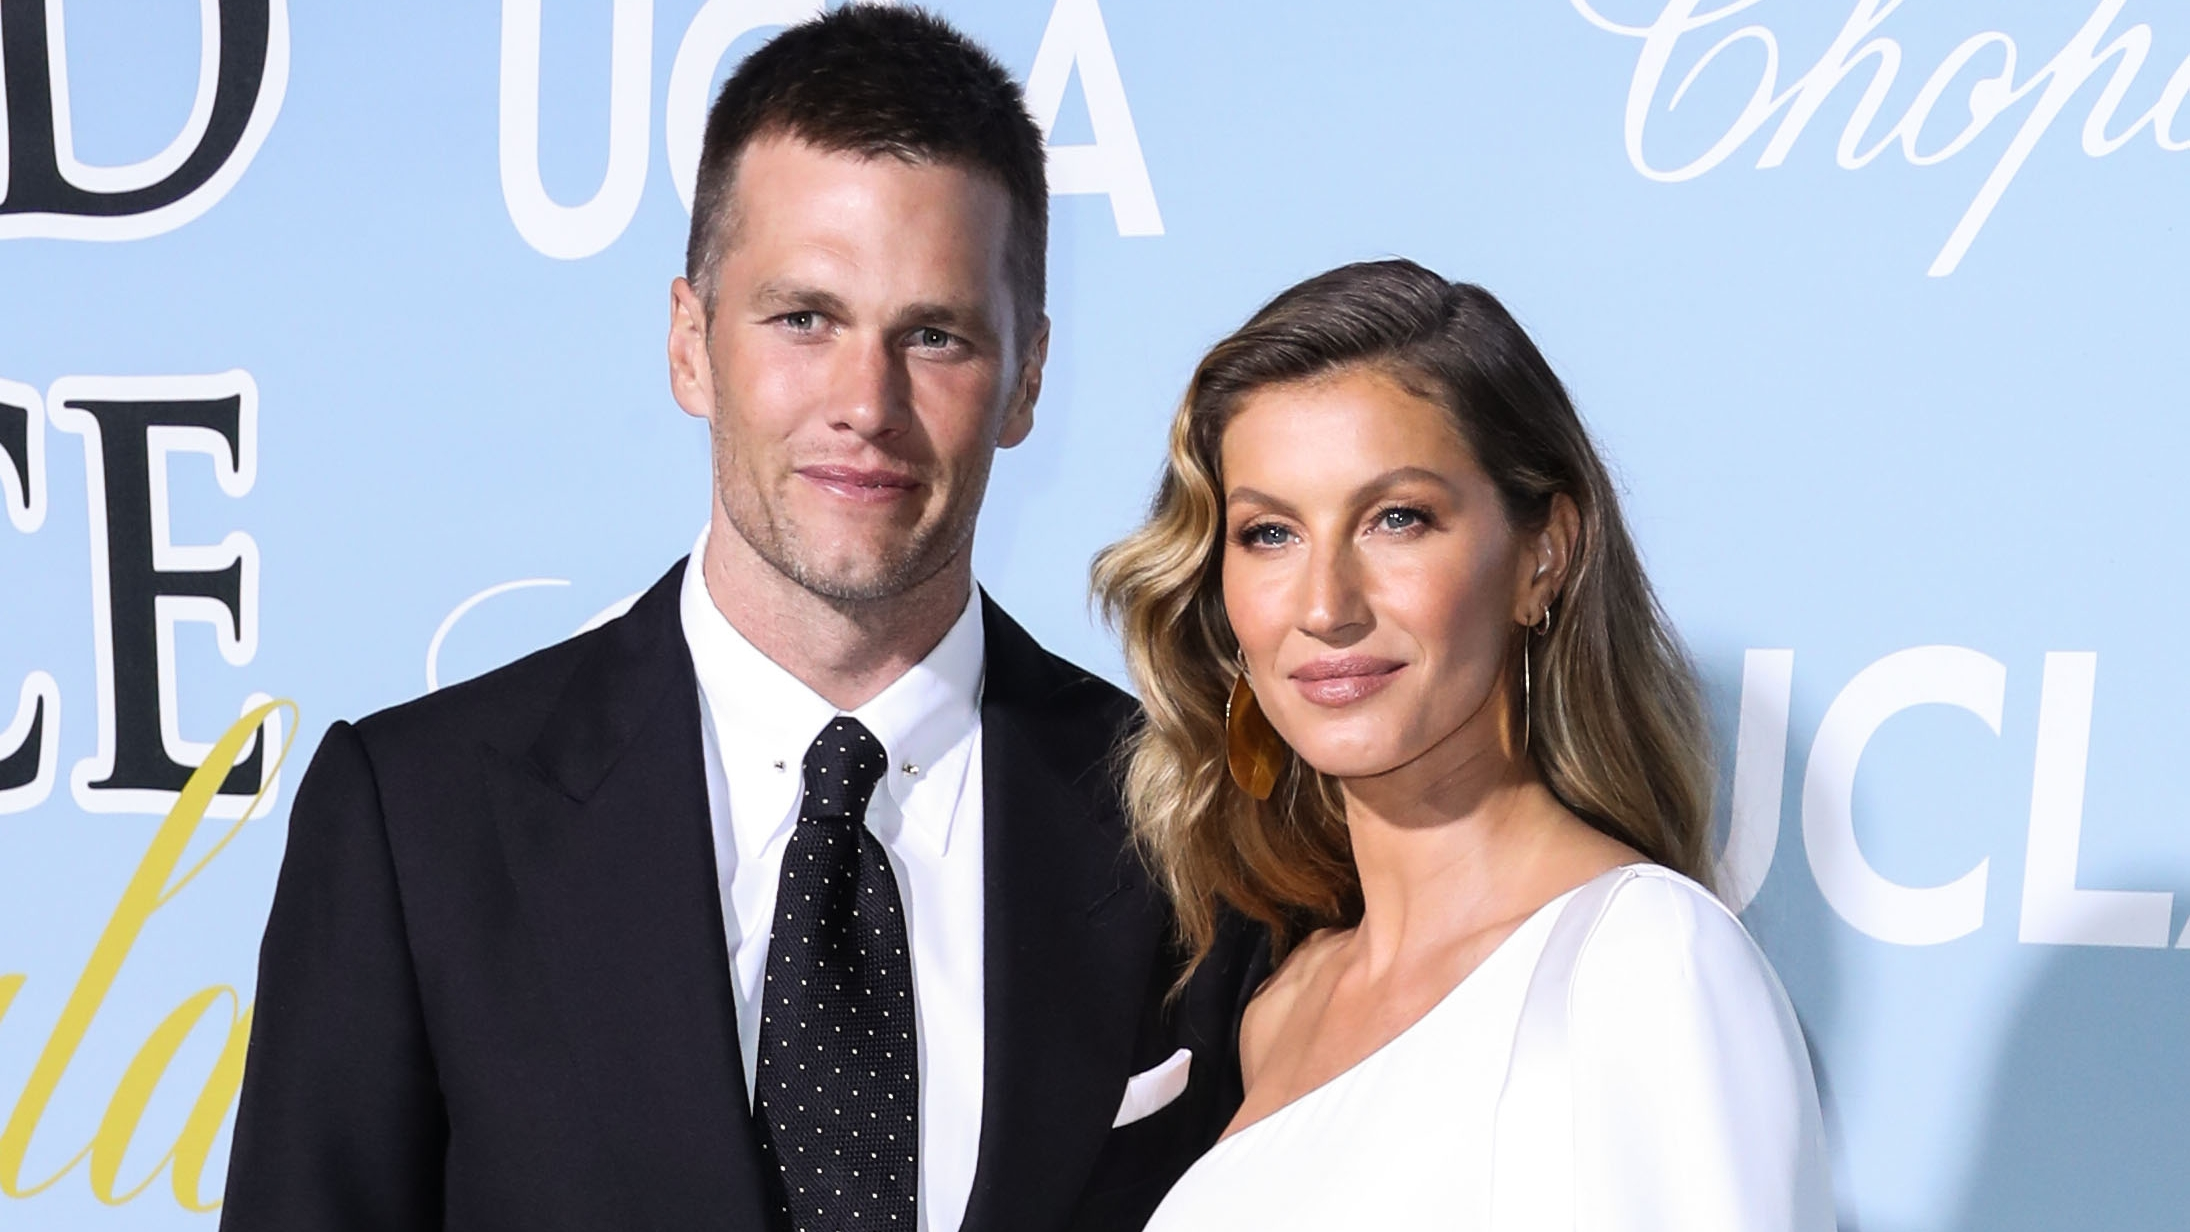 On Howard Stern Show Tom Brady Dishes On Marriage And Pats Breakup